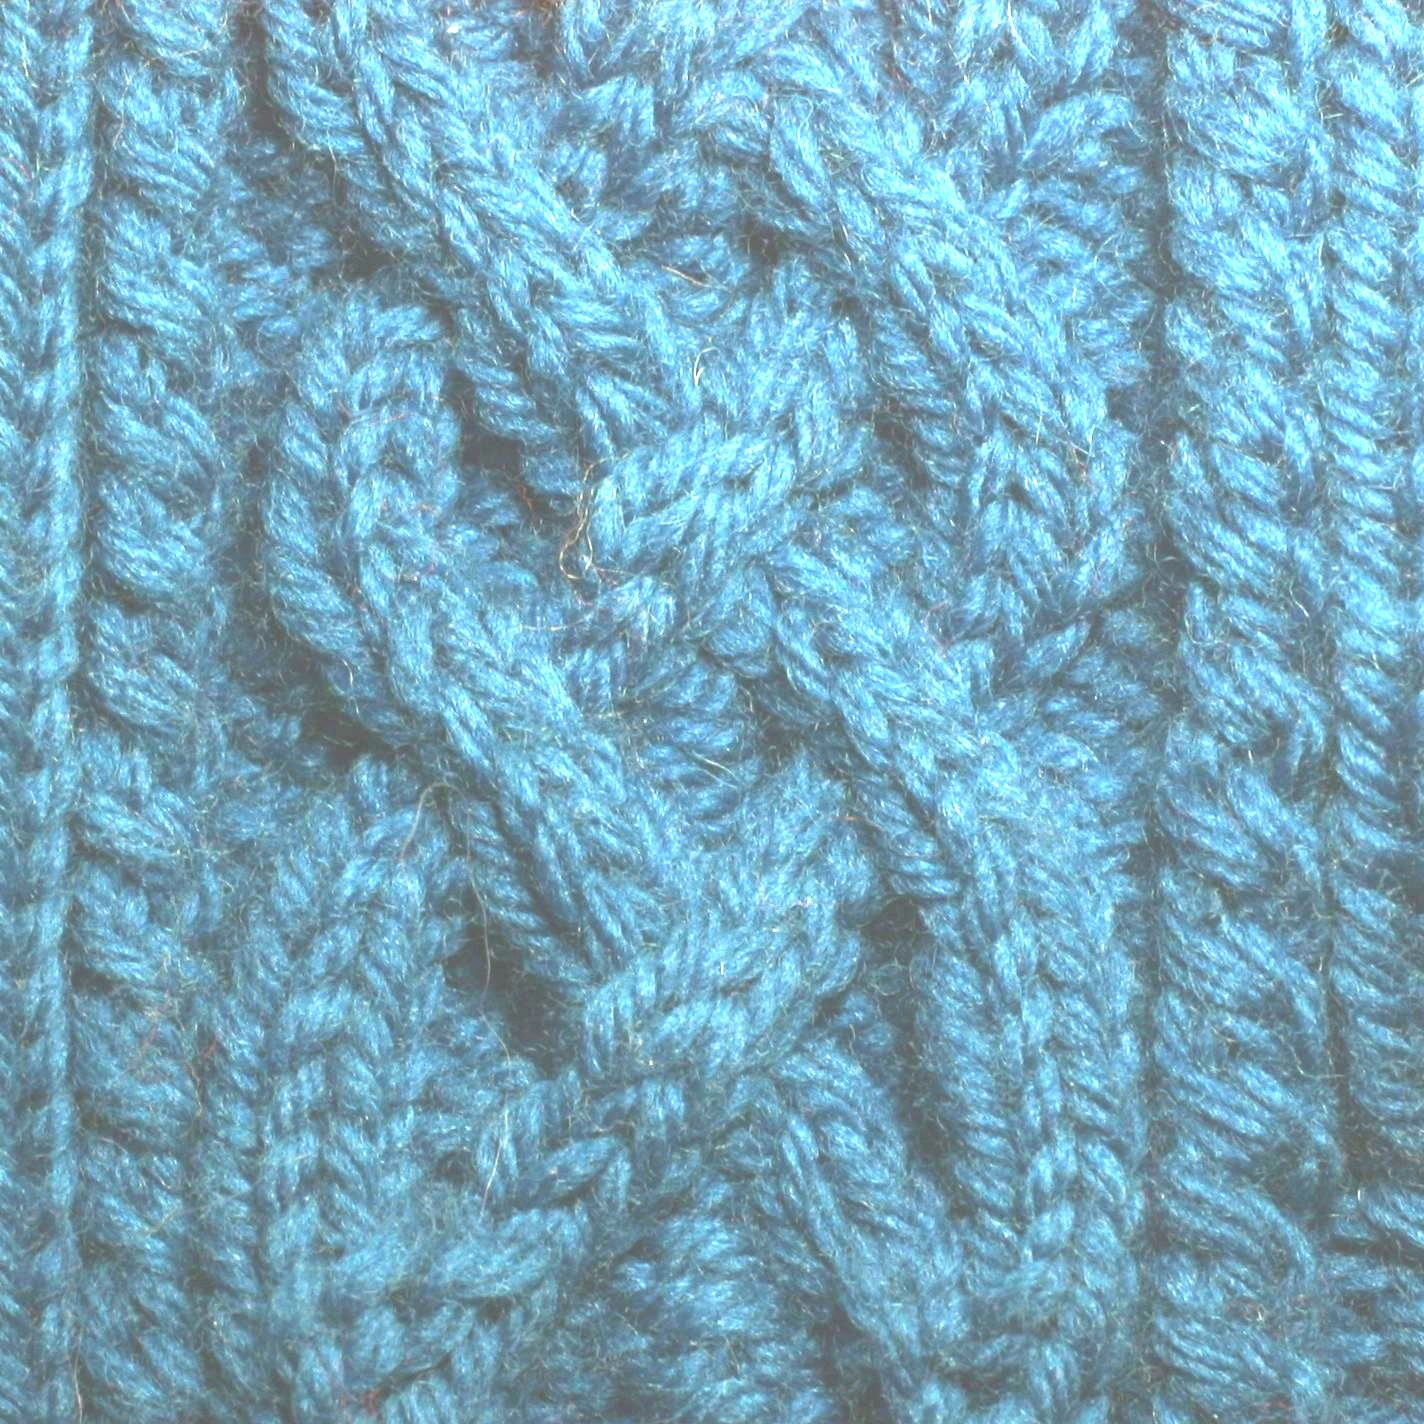 Knitting Cable Patterns Free : Original file ? (1,424   1,424 pixels, file size: 400 KB, MIME type ...